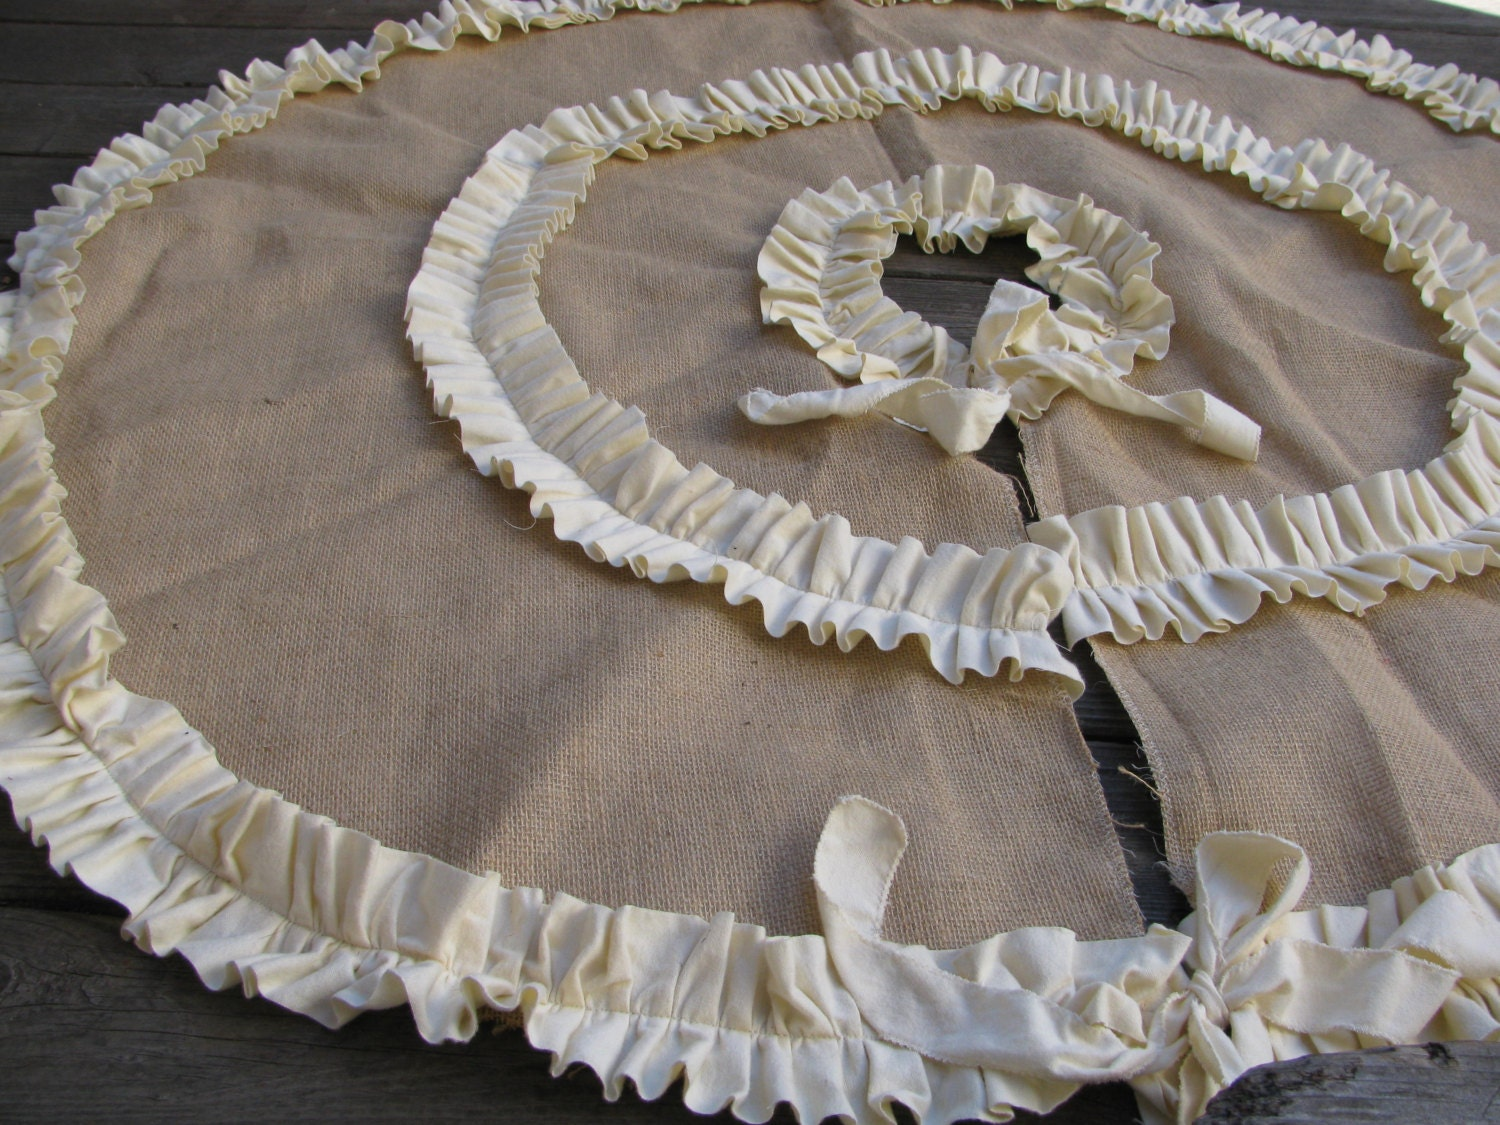 Phenomenal Burlap Tree Skirt With Double Cream Or Red Ruffles Christmas Tree Skirt Christmas Decor Rustic Christmas Download Free Architecture Designs Rallybritishbridgeorg